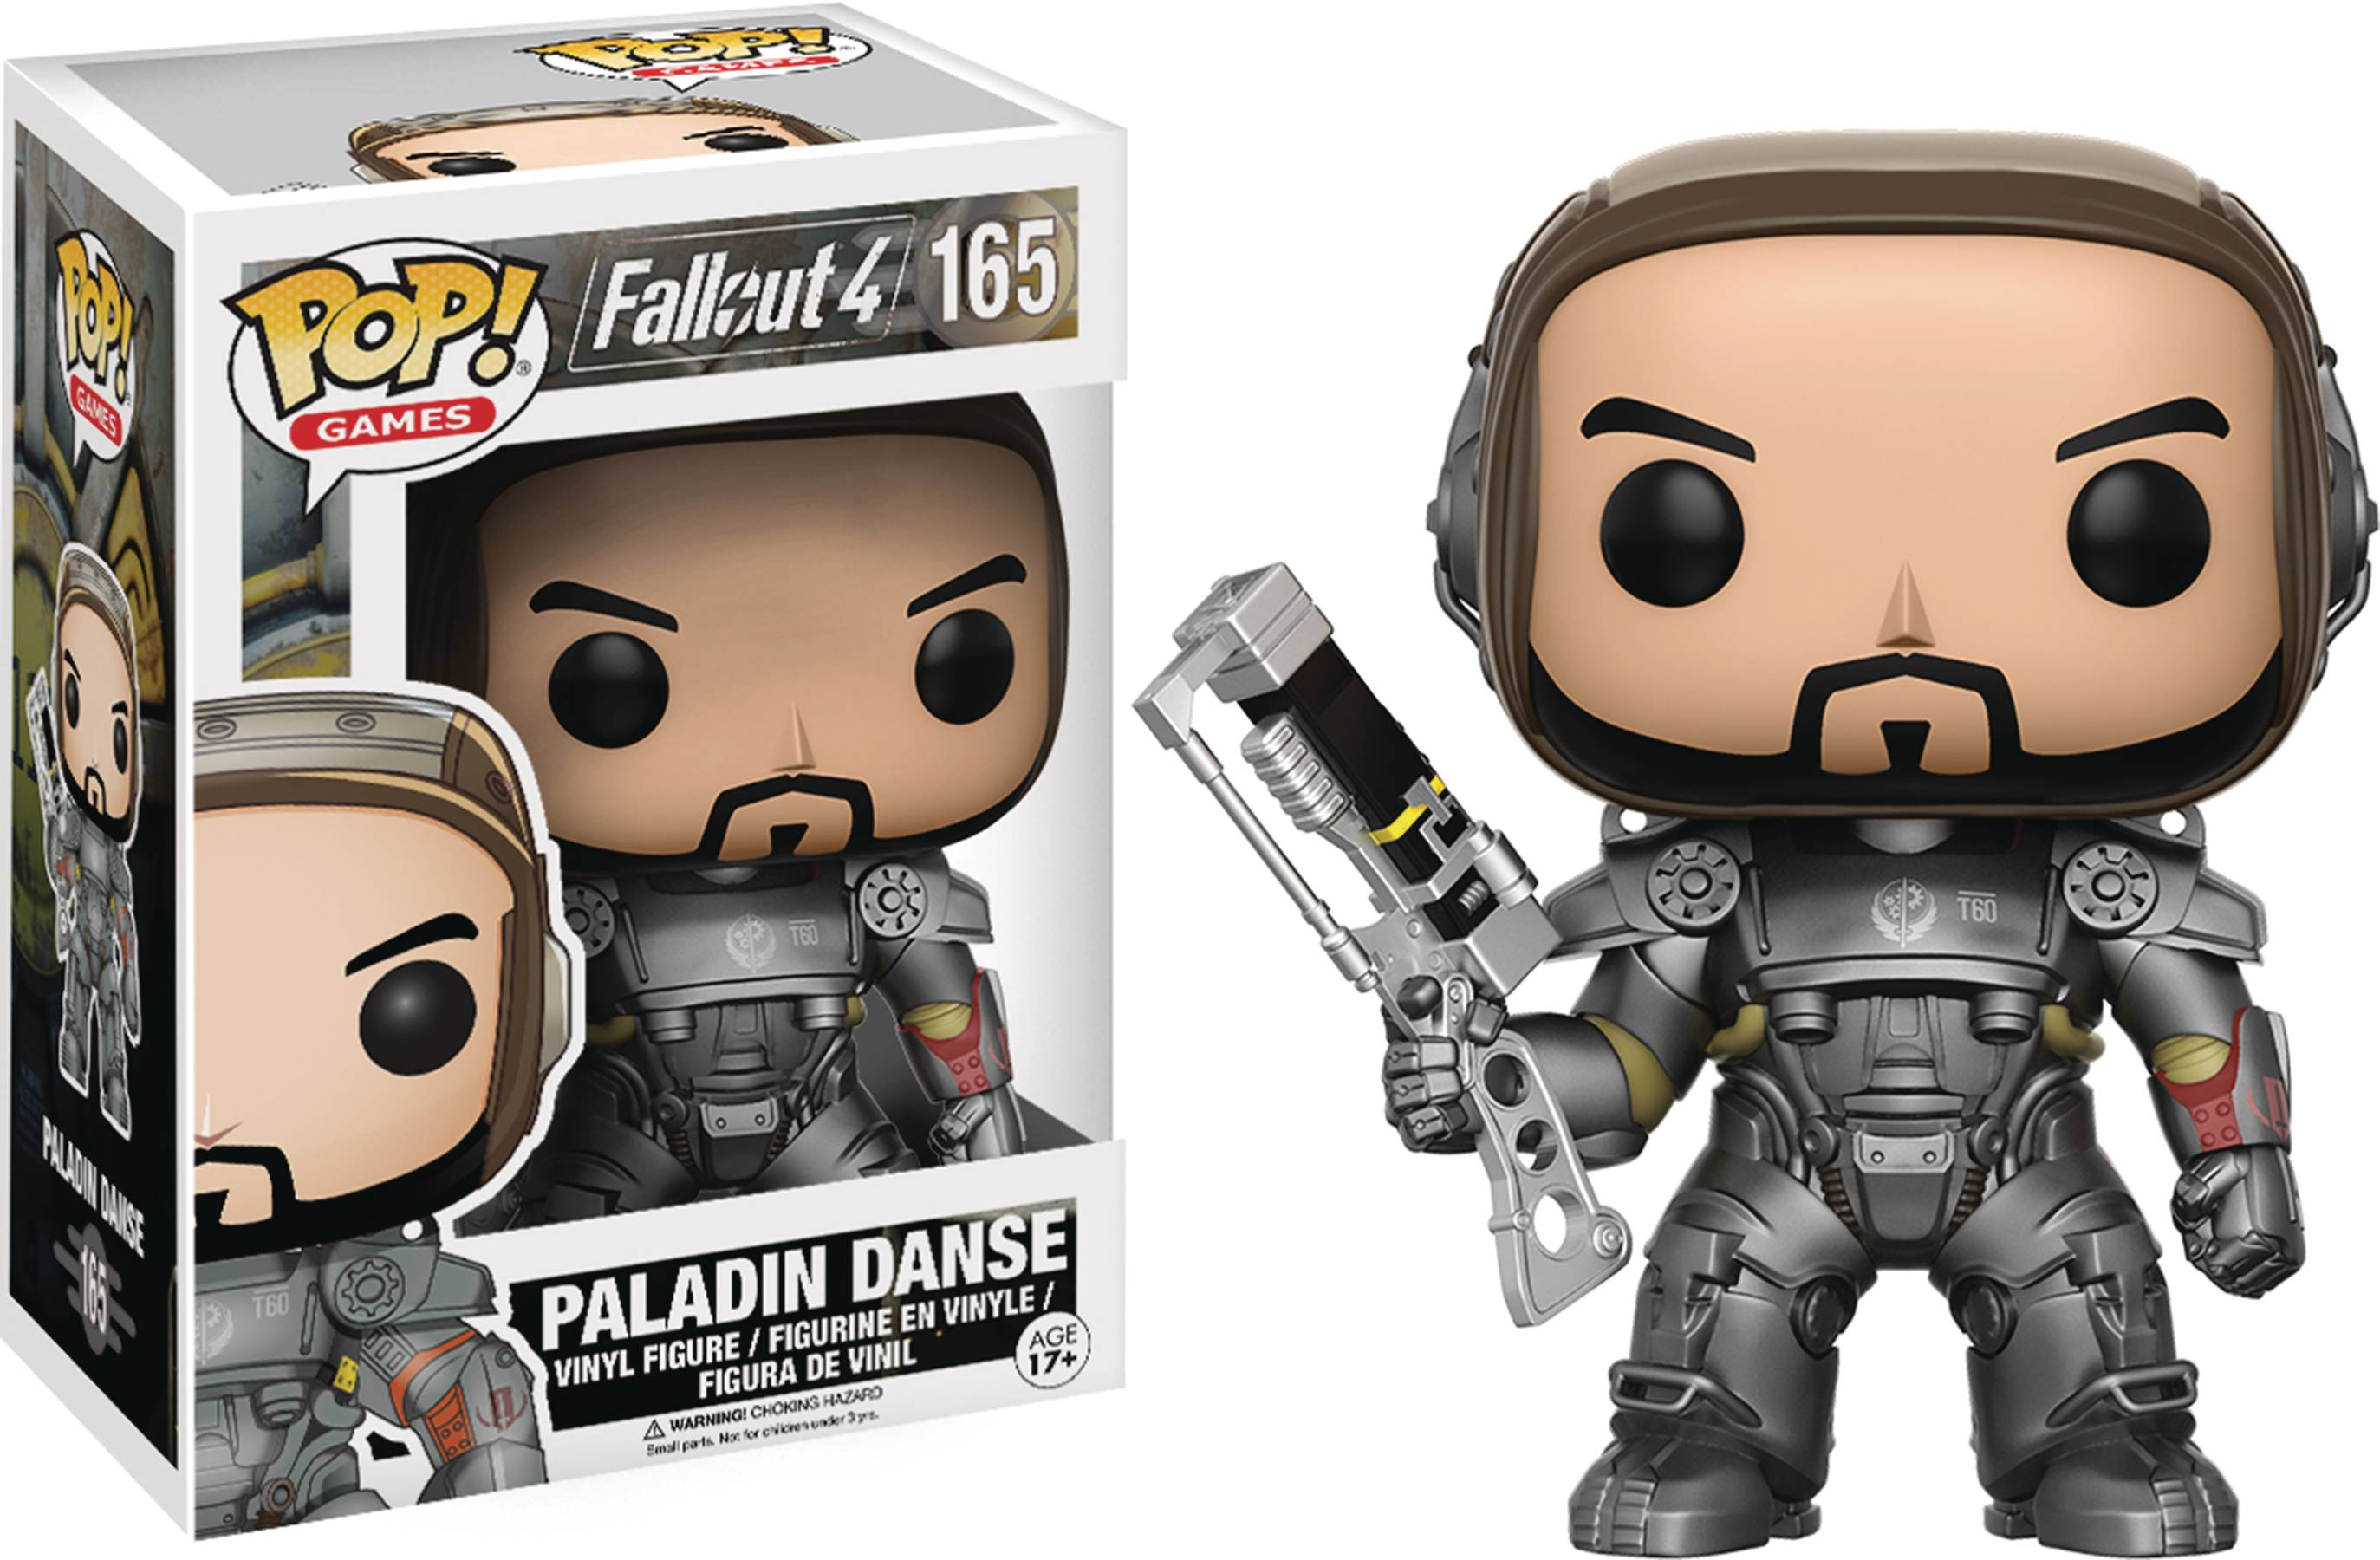 POP FALLOUT PALADIN DANSE VINYL FIG